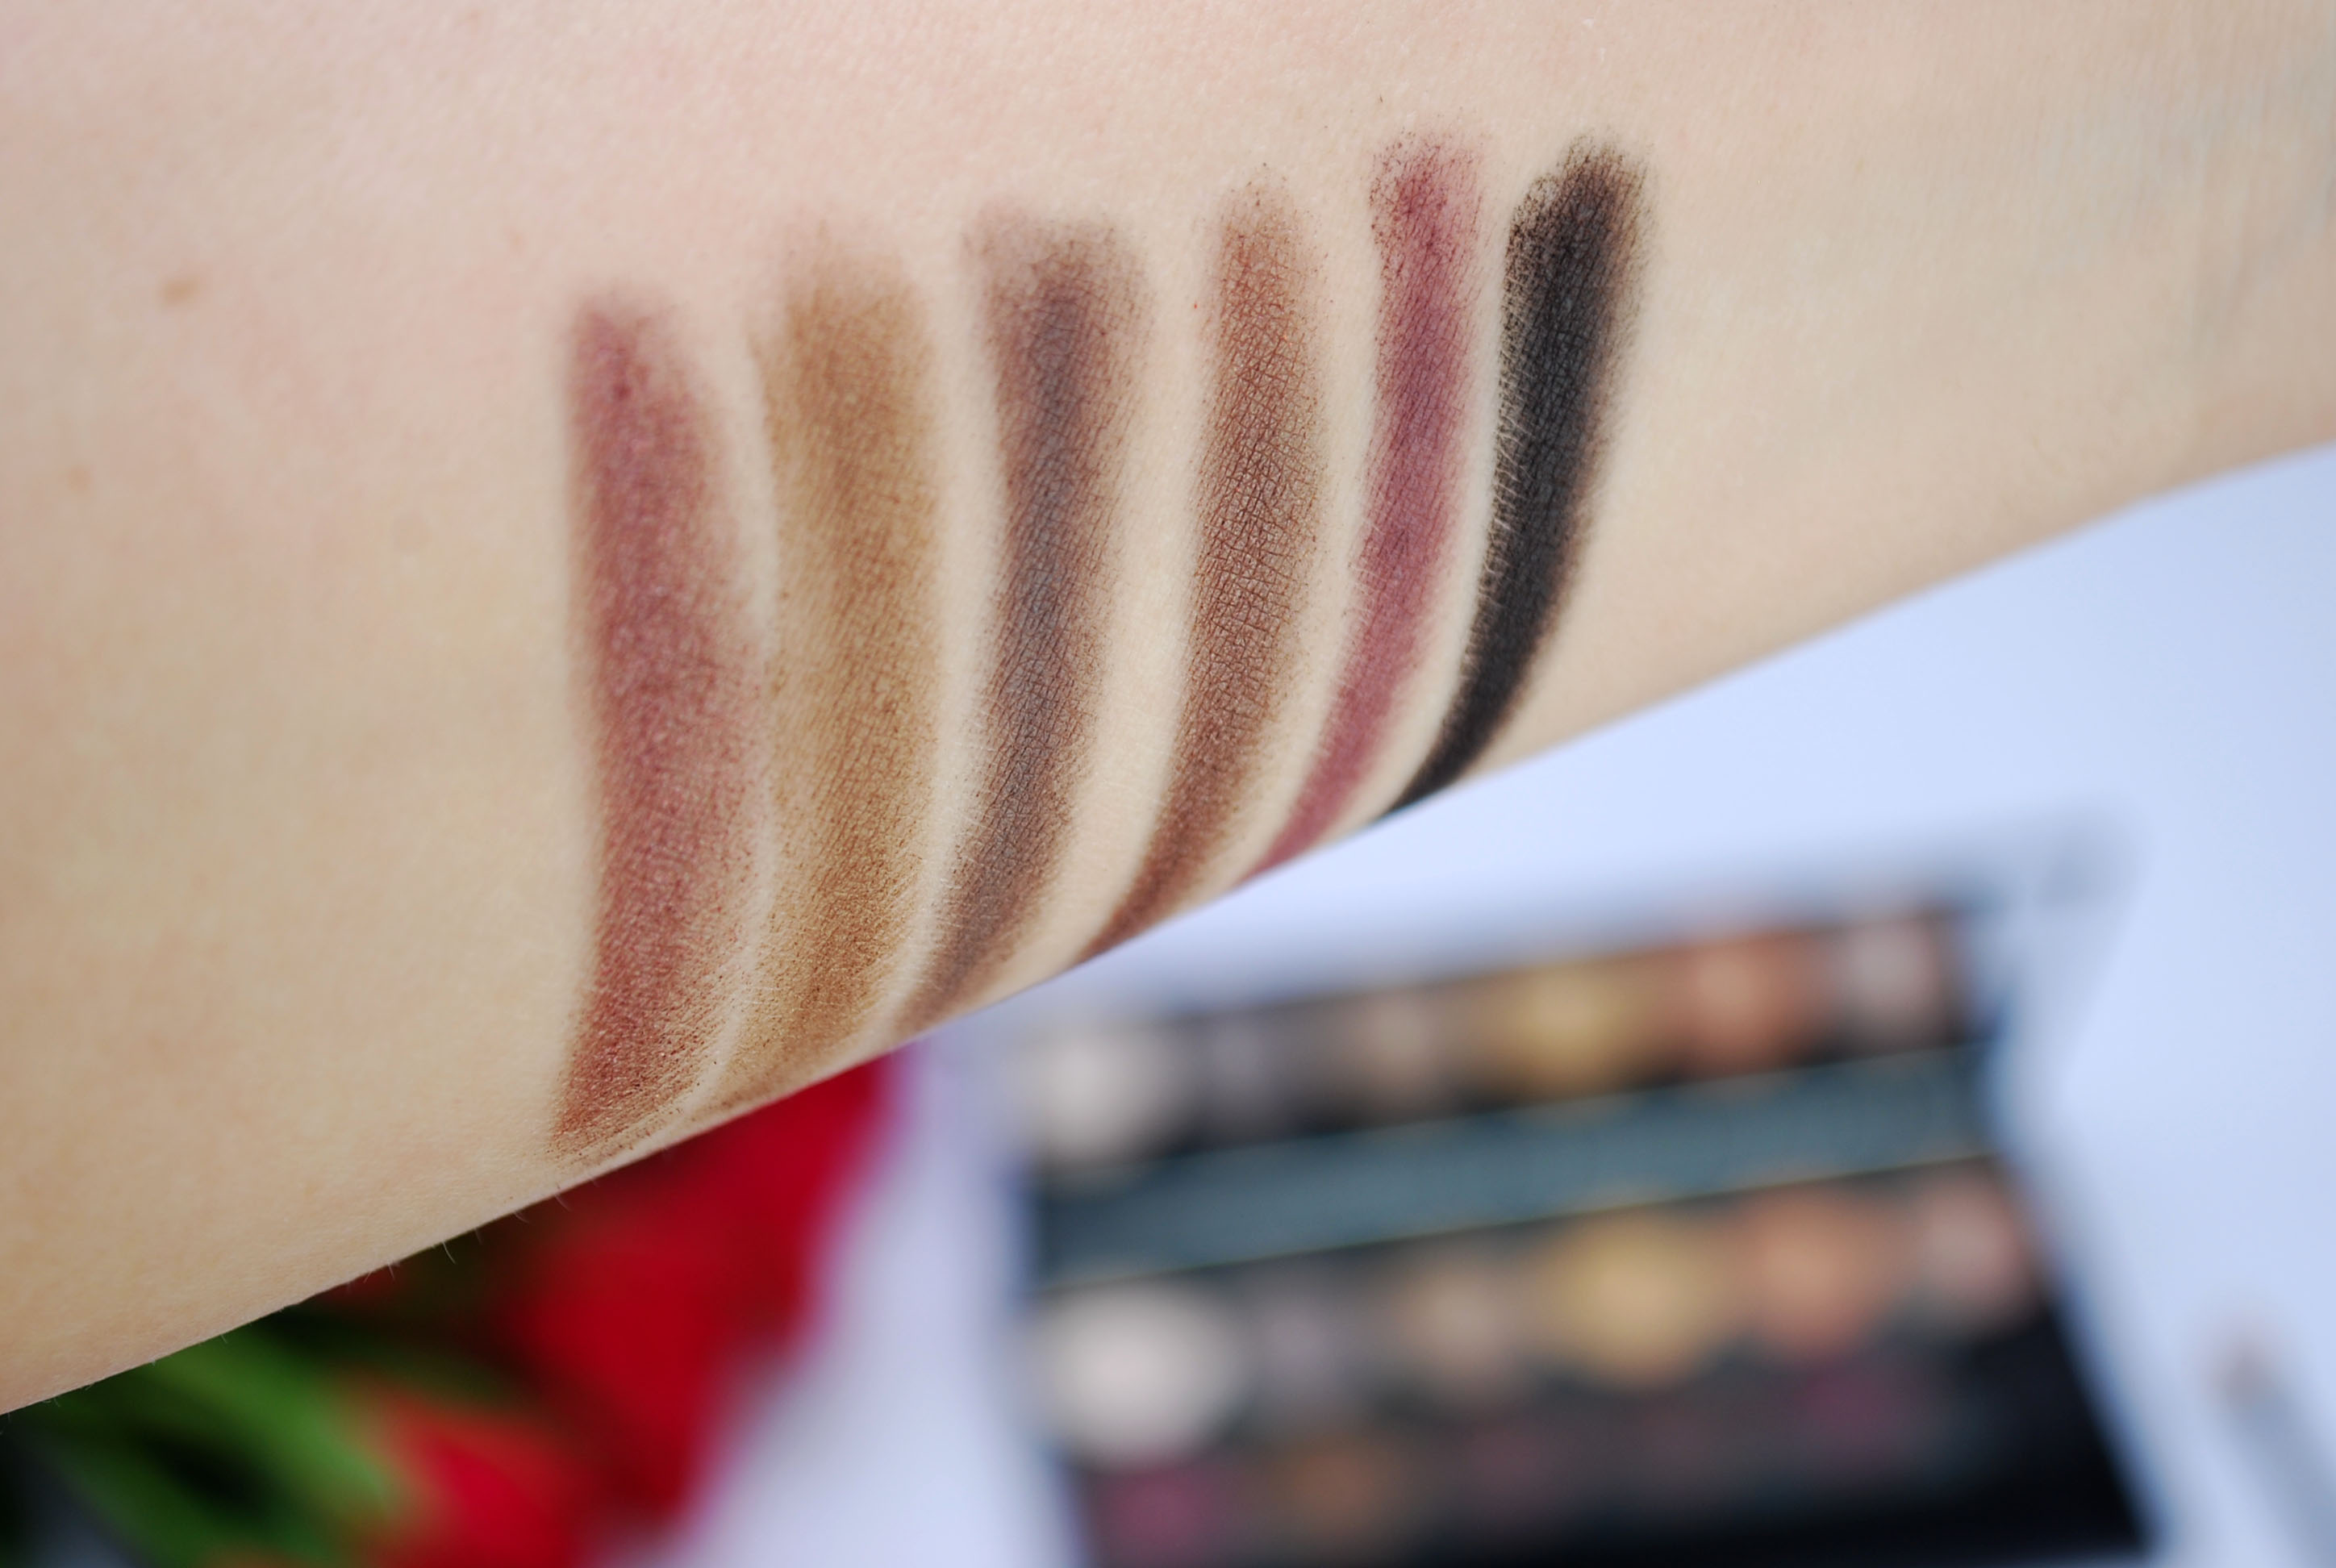 Sleek au naturel palette swatches